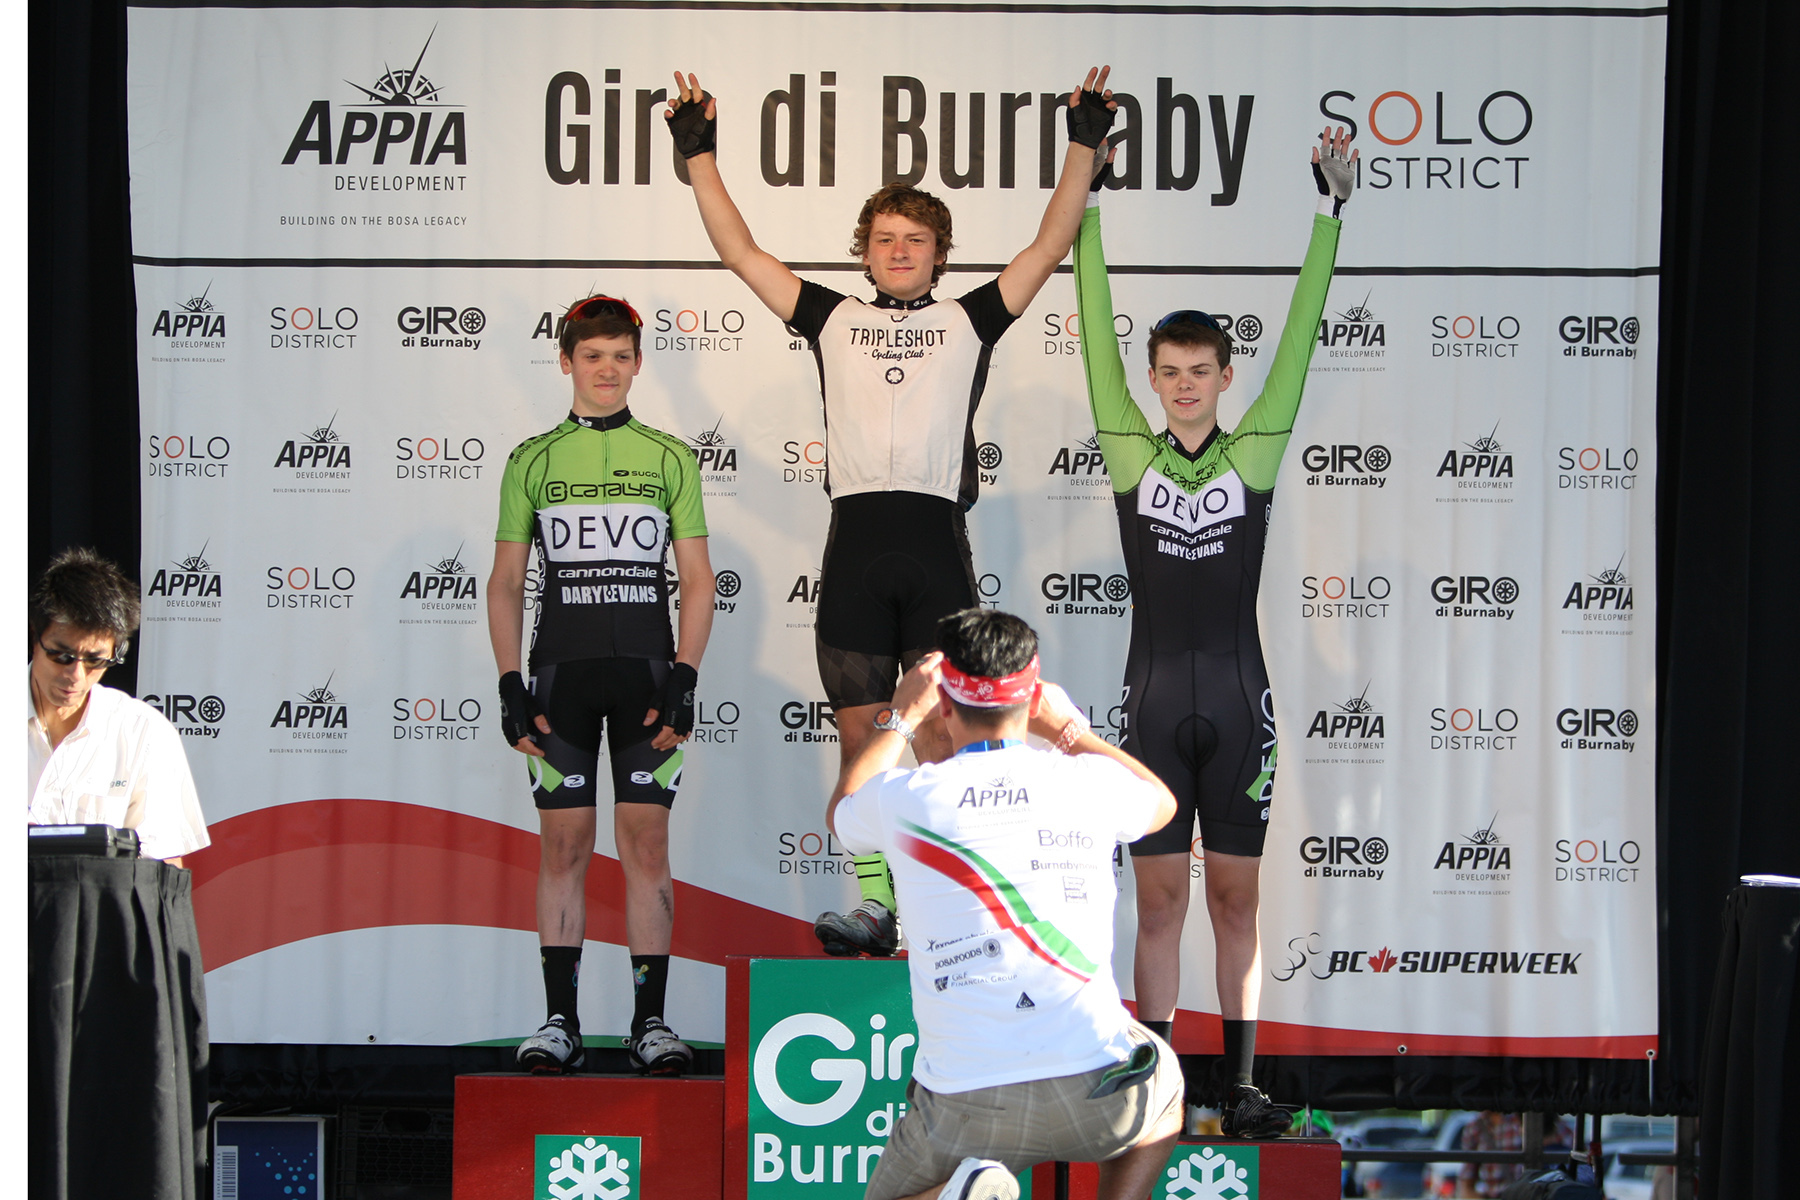 BC Superweek & Giro di Burnaby Help Inspire Next Generation of Cyclists